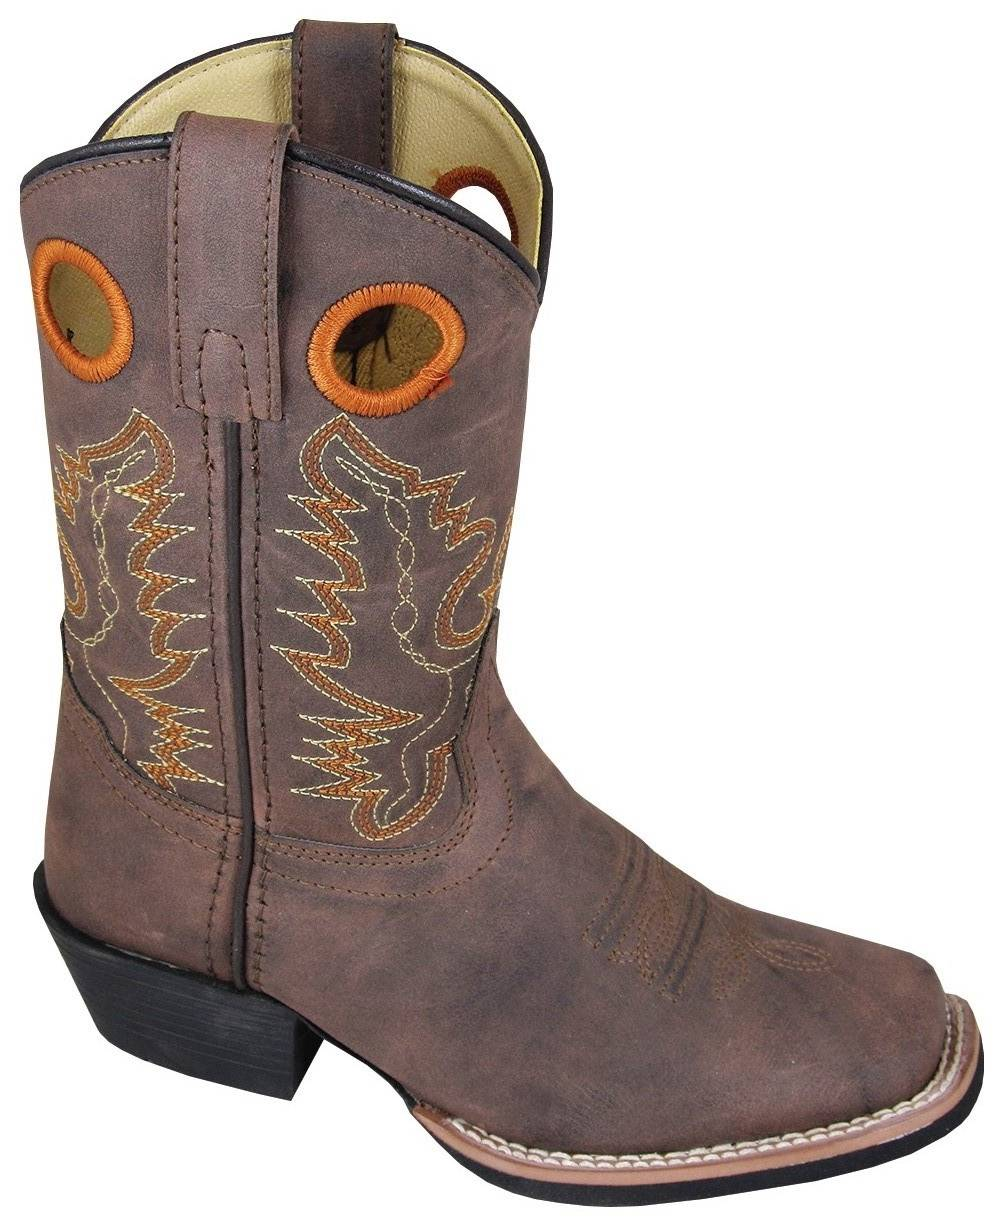 Smoky Mountain Memphis Boots - Youth, Distressed Brown